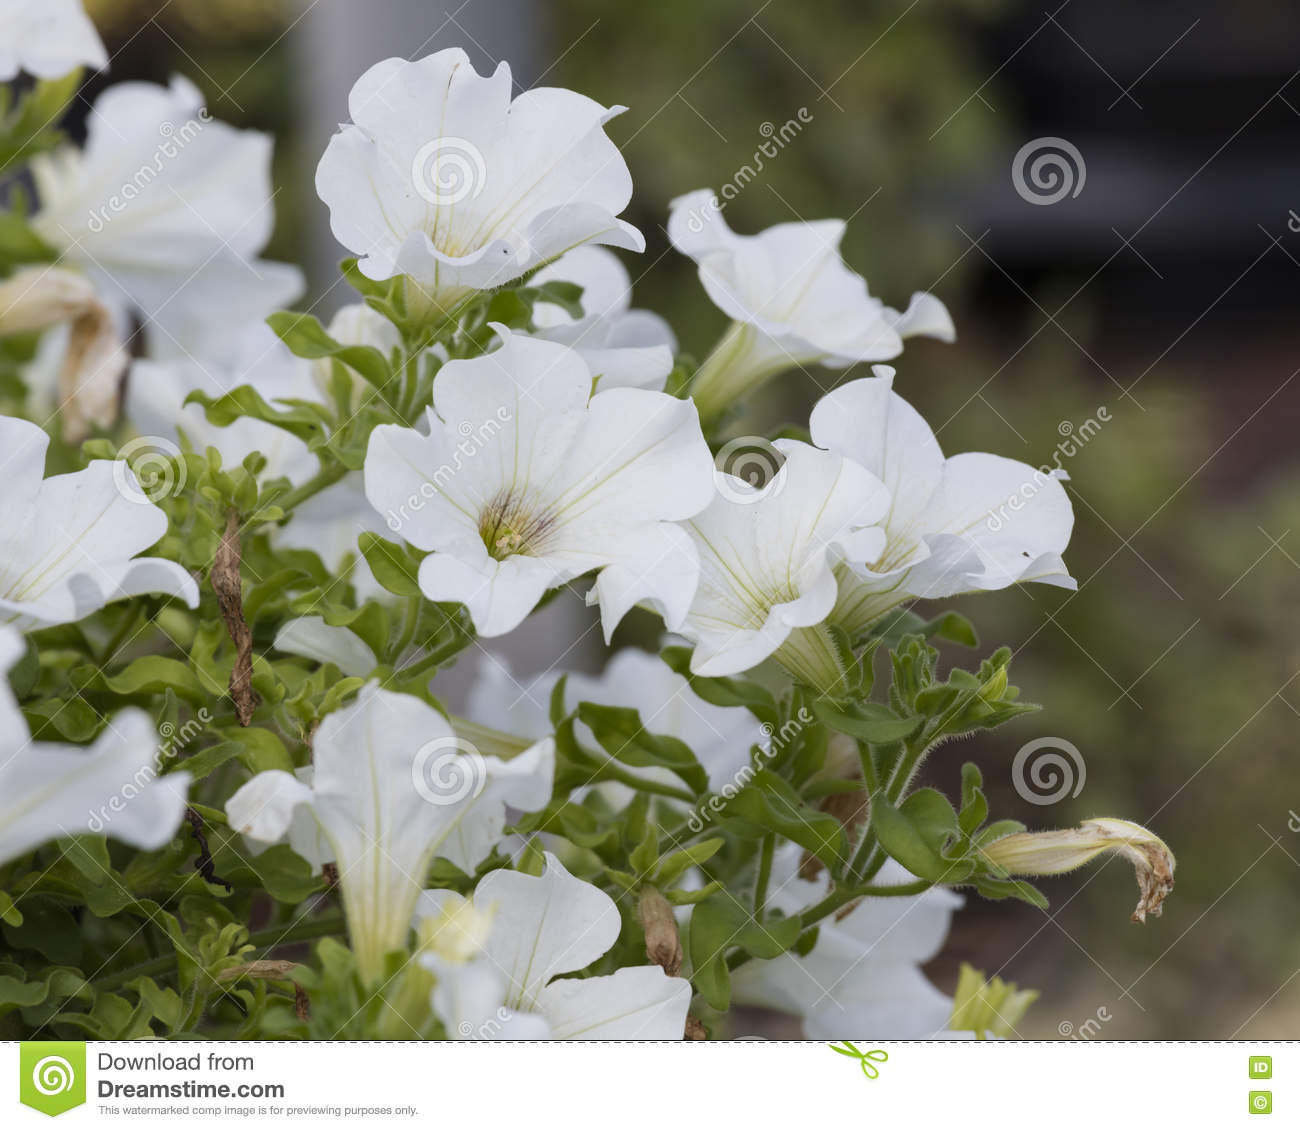 Creeper White Bell Flower Stock Photo Image Of Leaves 75481826